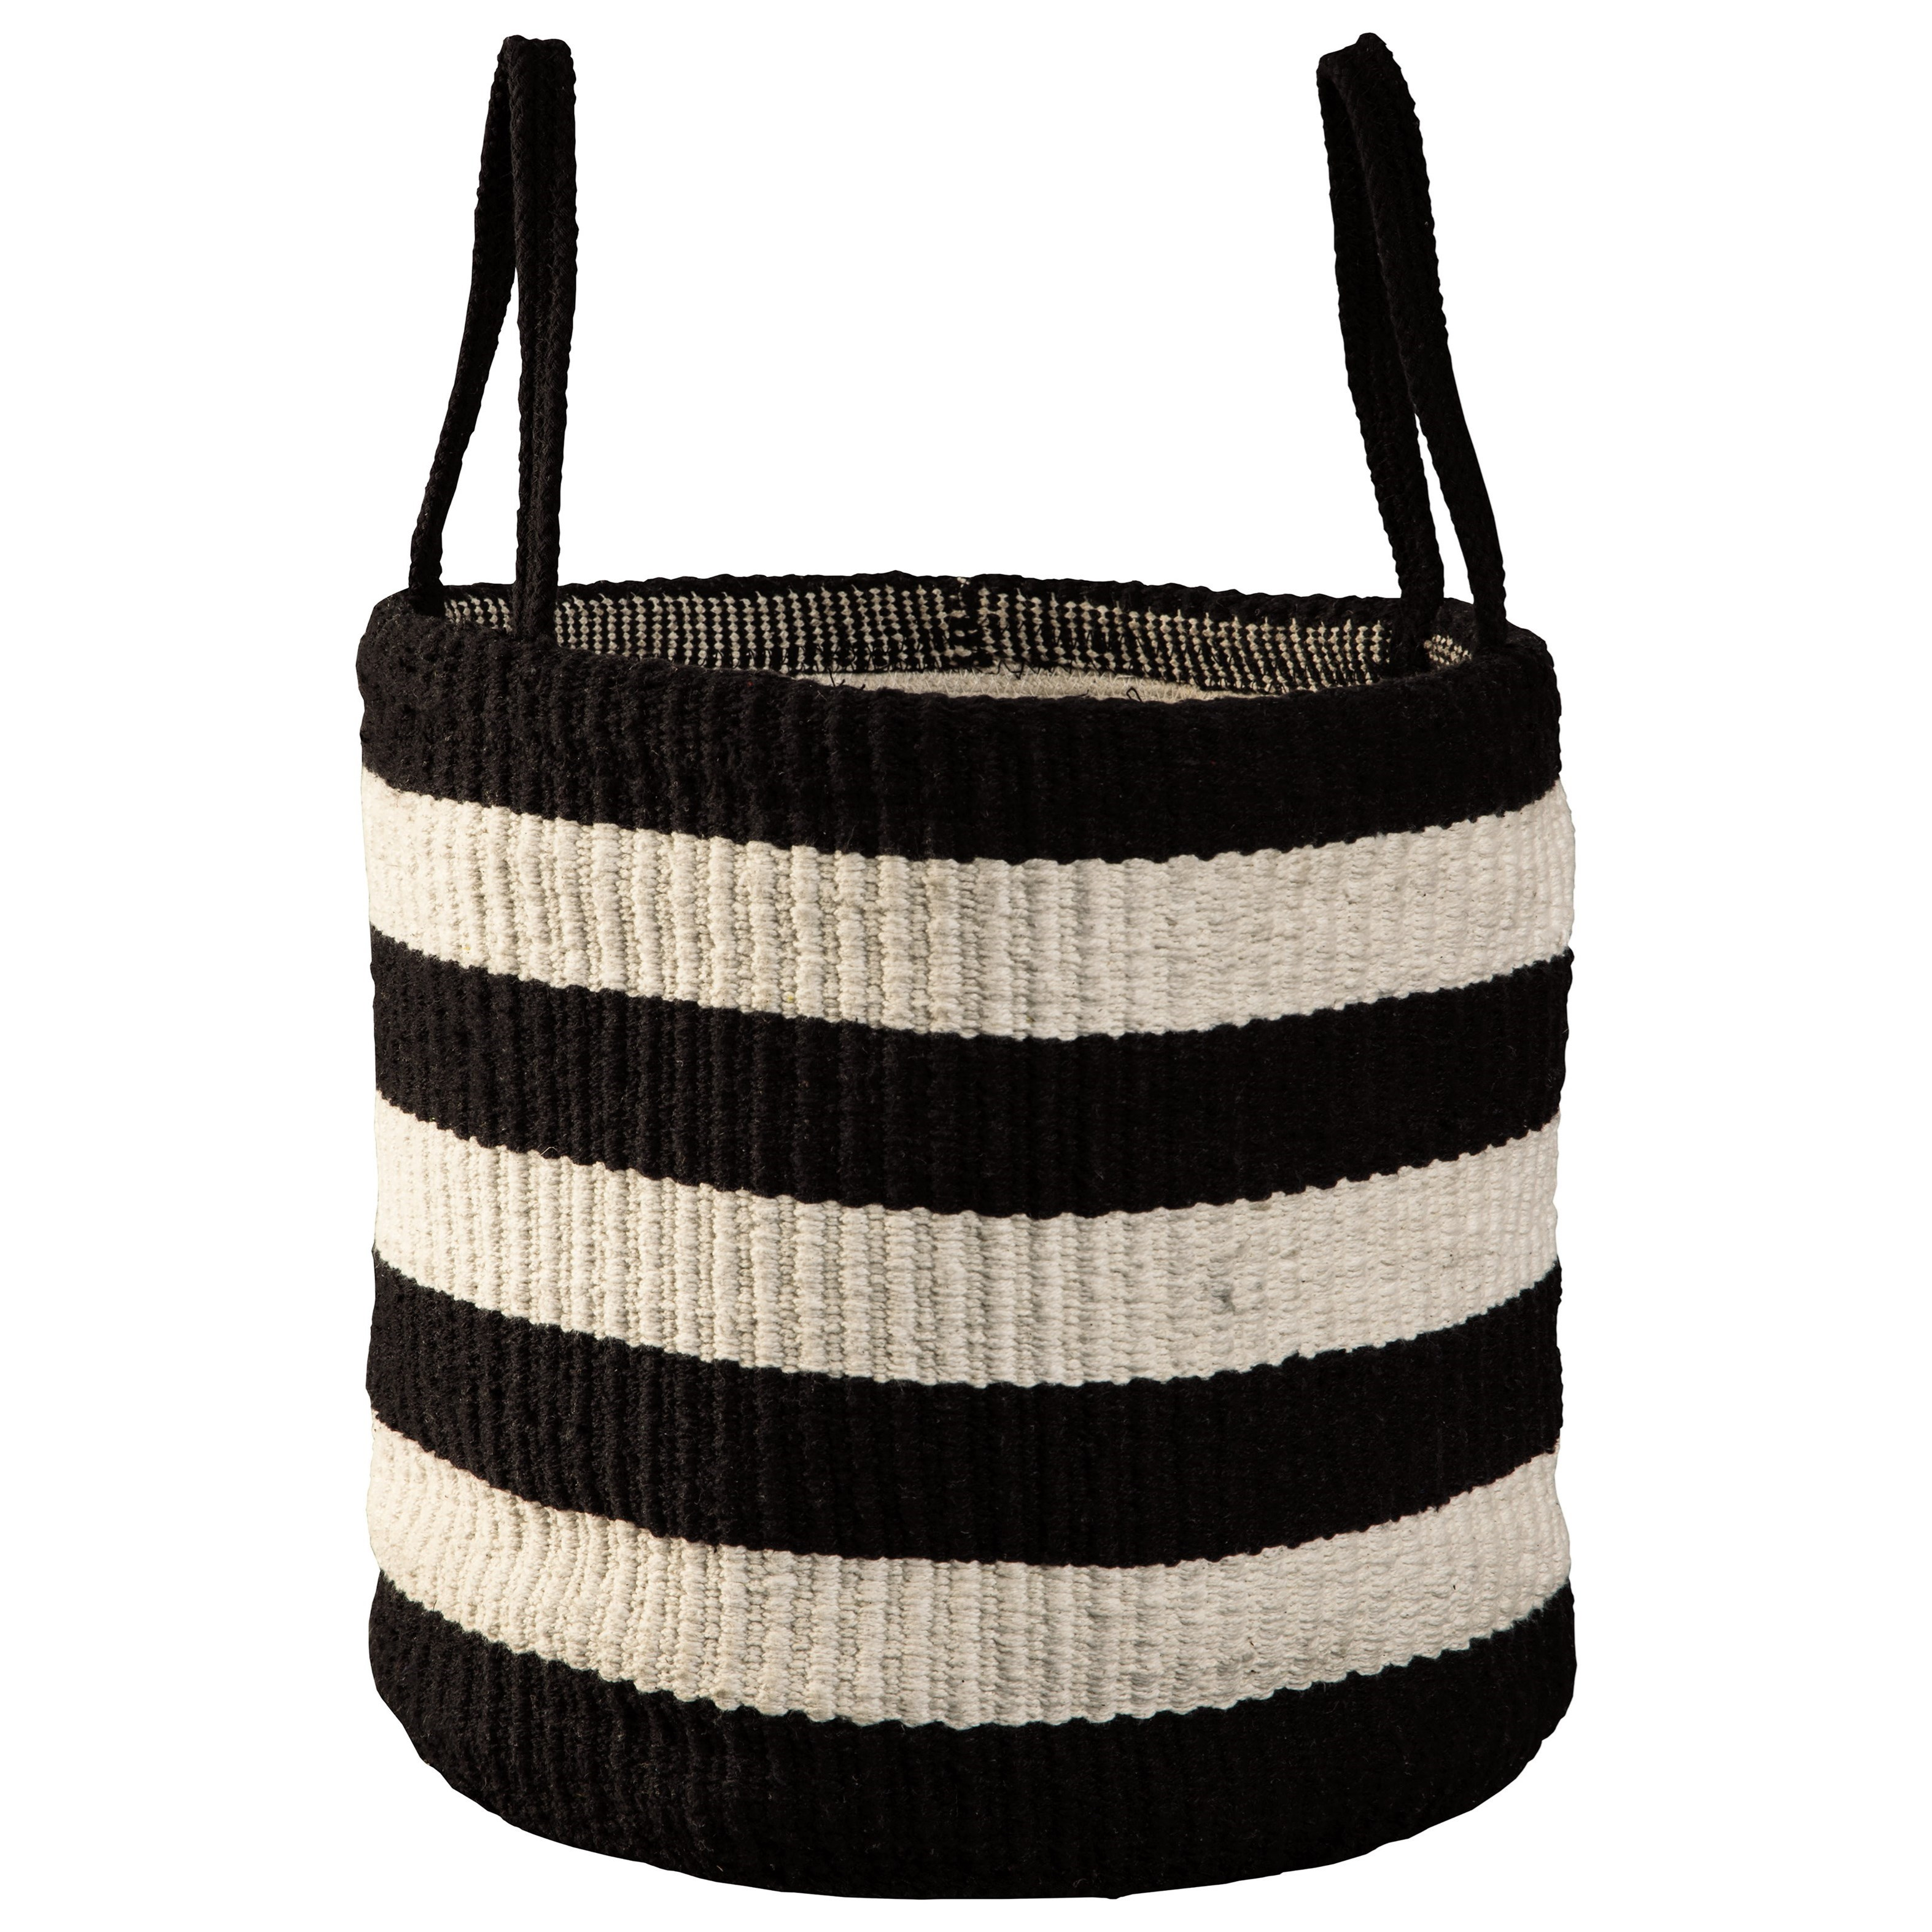 Signature Design by Ashley Accents Edgerton Black/White Basket - Item Number: A2000098B